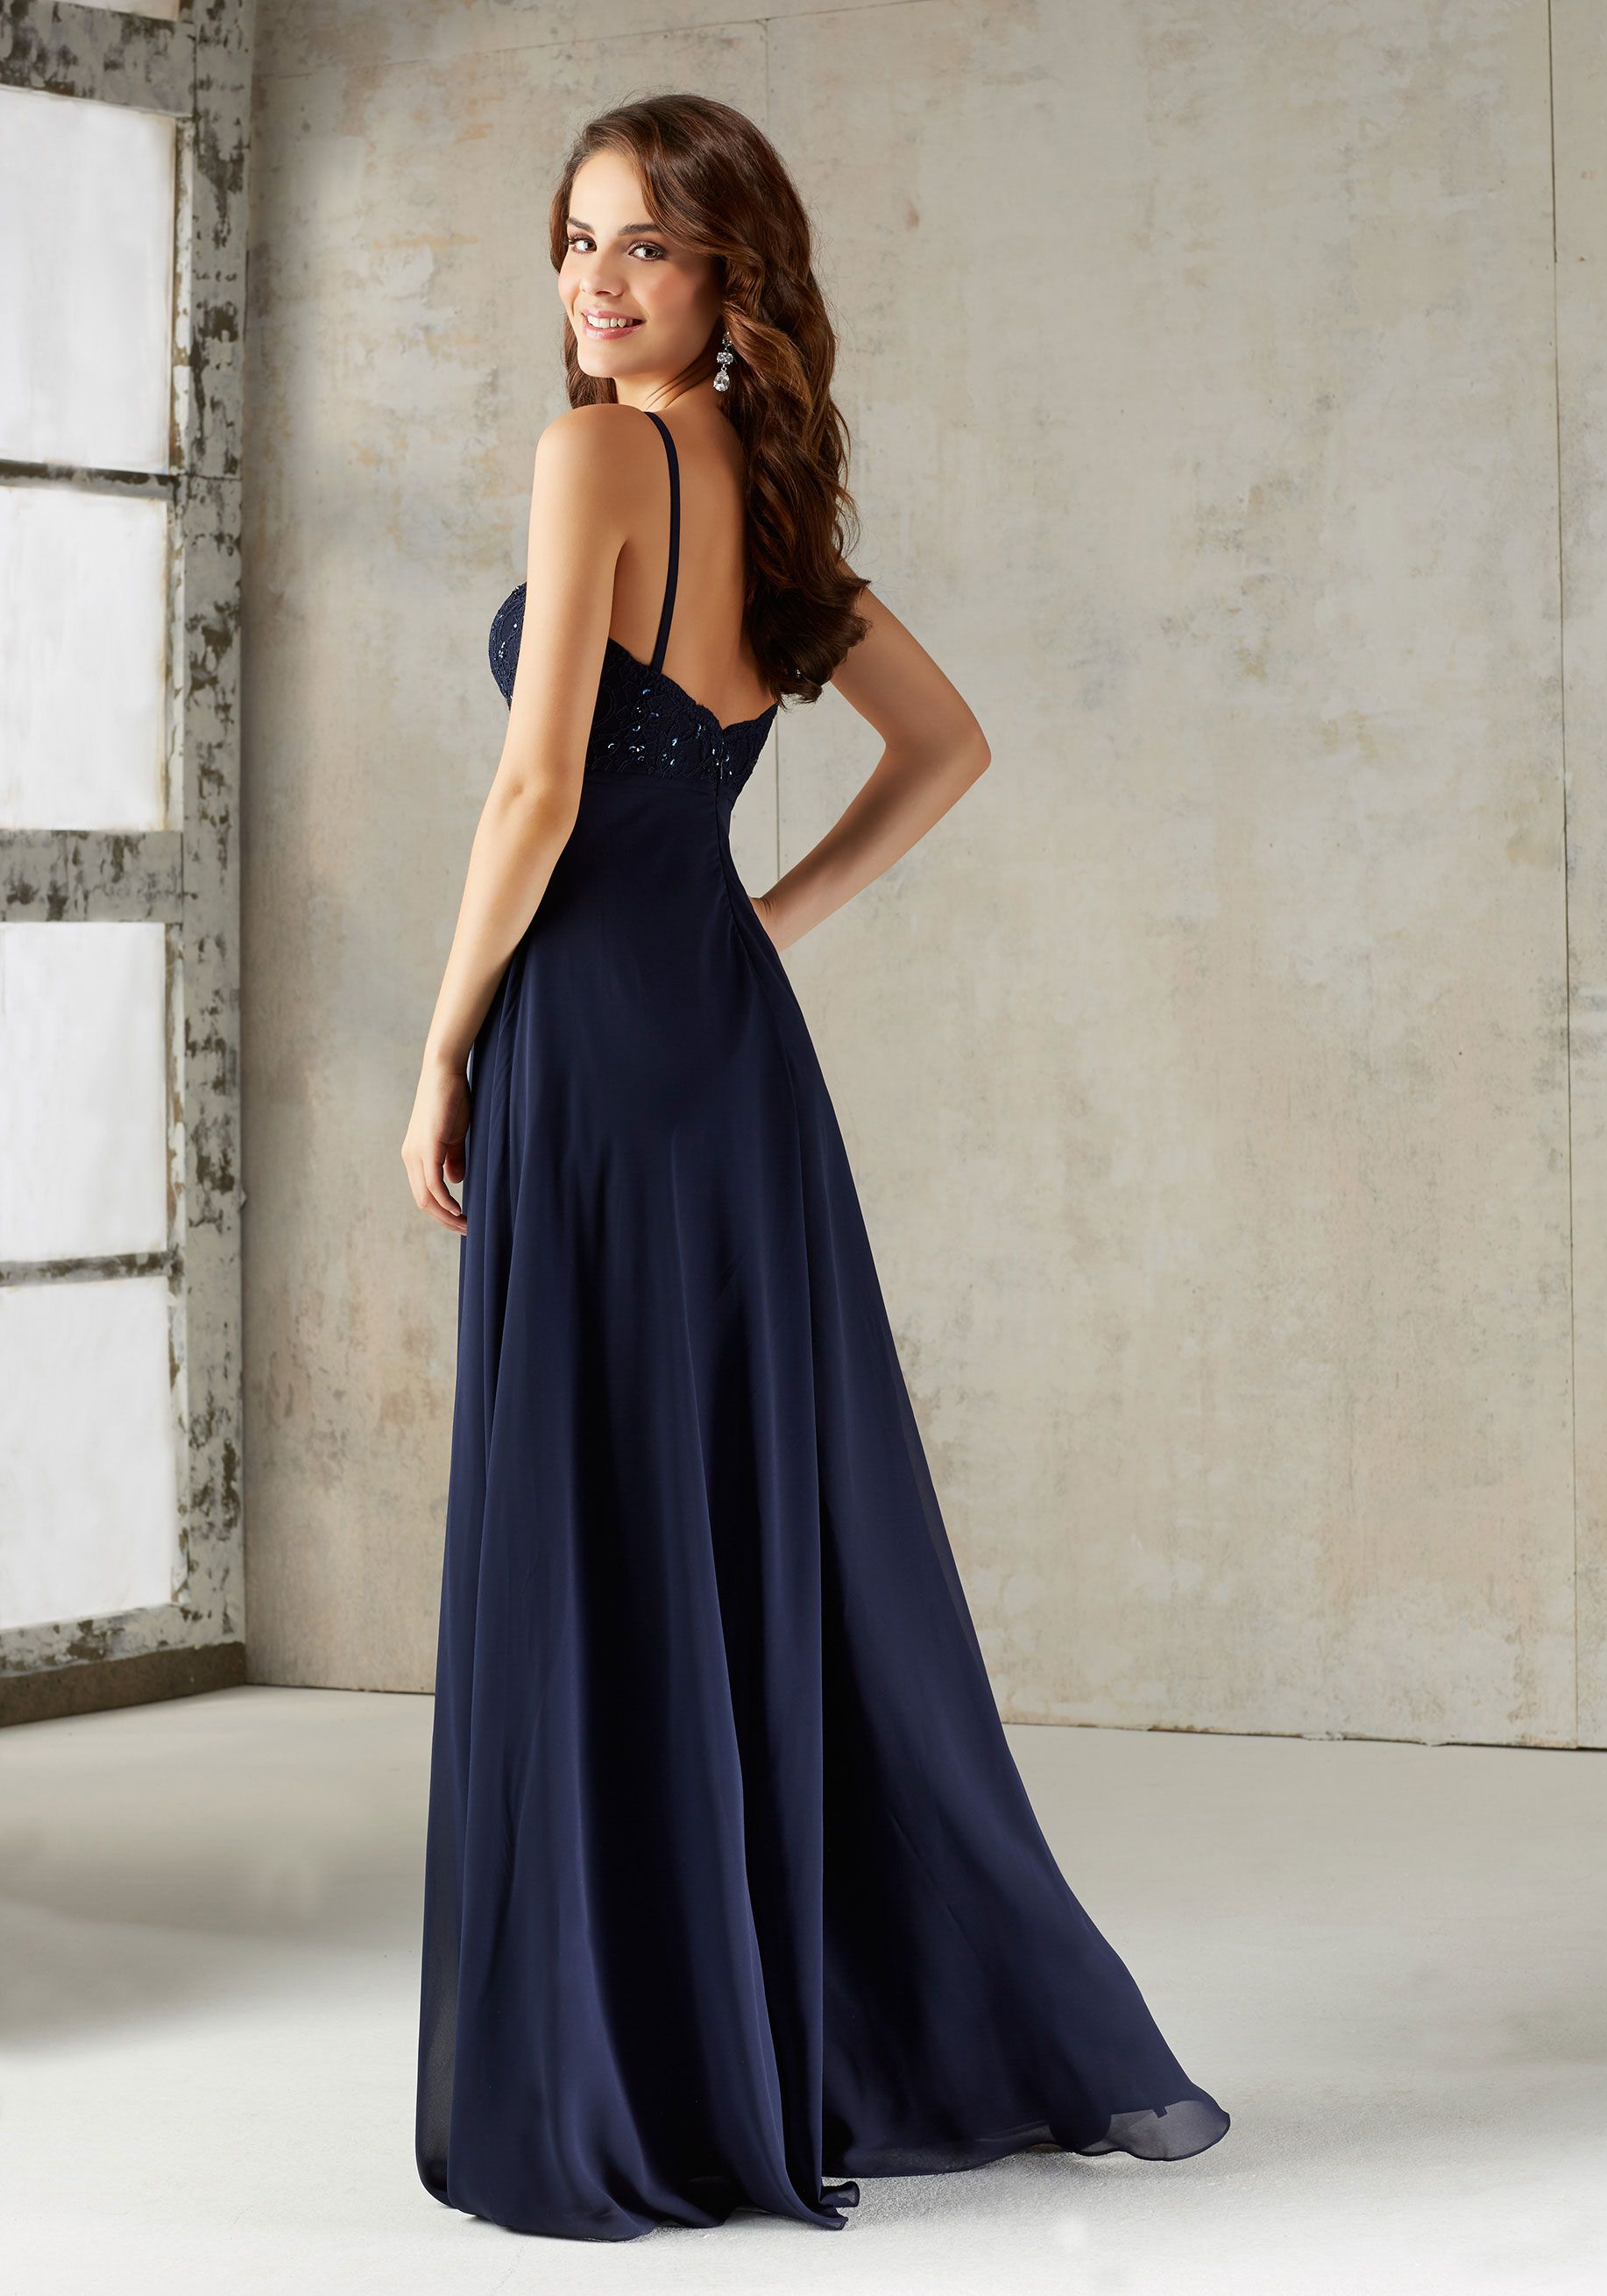 79a6f358487 Beaded Lace and Chiffon Bridesmaids Dress in 2019 | Bridesmaids ...